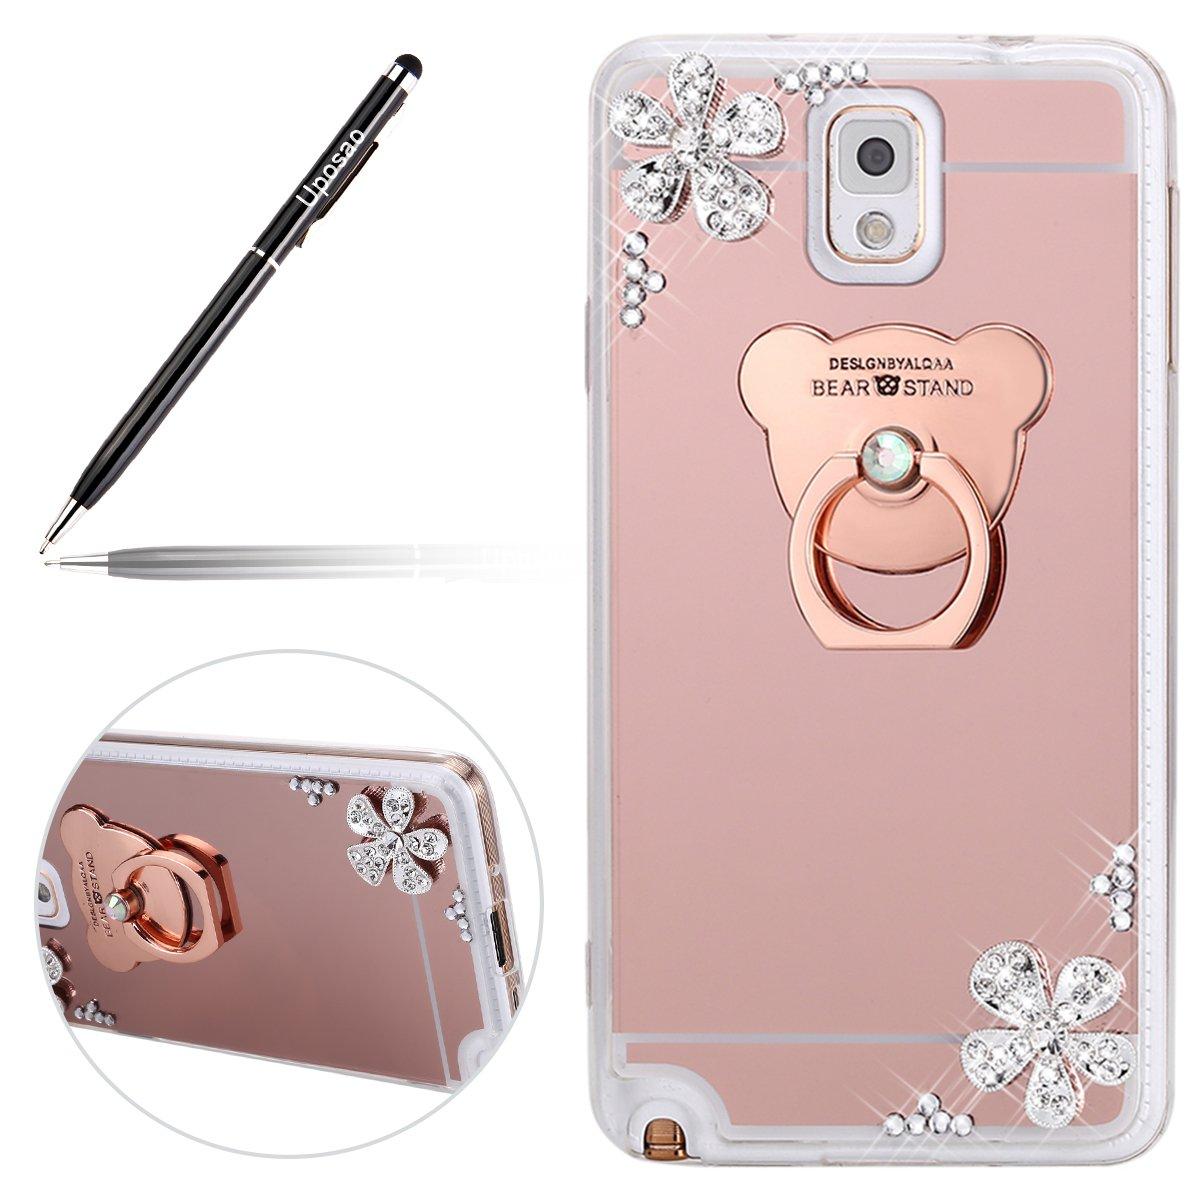 Miroir Coque pour Samsung Galaxy Note 3, Galaxy Note 3 Coque en Silicone É tui Housse,Uposao Paillette Coque pour Fille Femme Brillante Diamant Strass Bling Glitter Sparkle Placage Clair Clear View Miroir Coque pour Galaxy Note 3 Bague Support T&eac